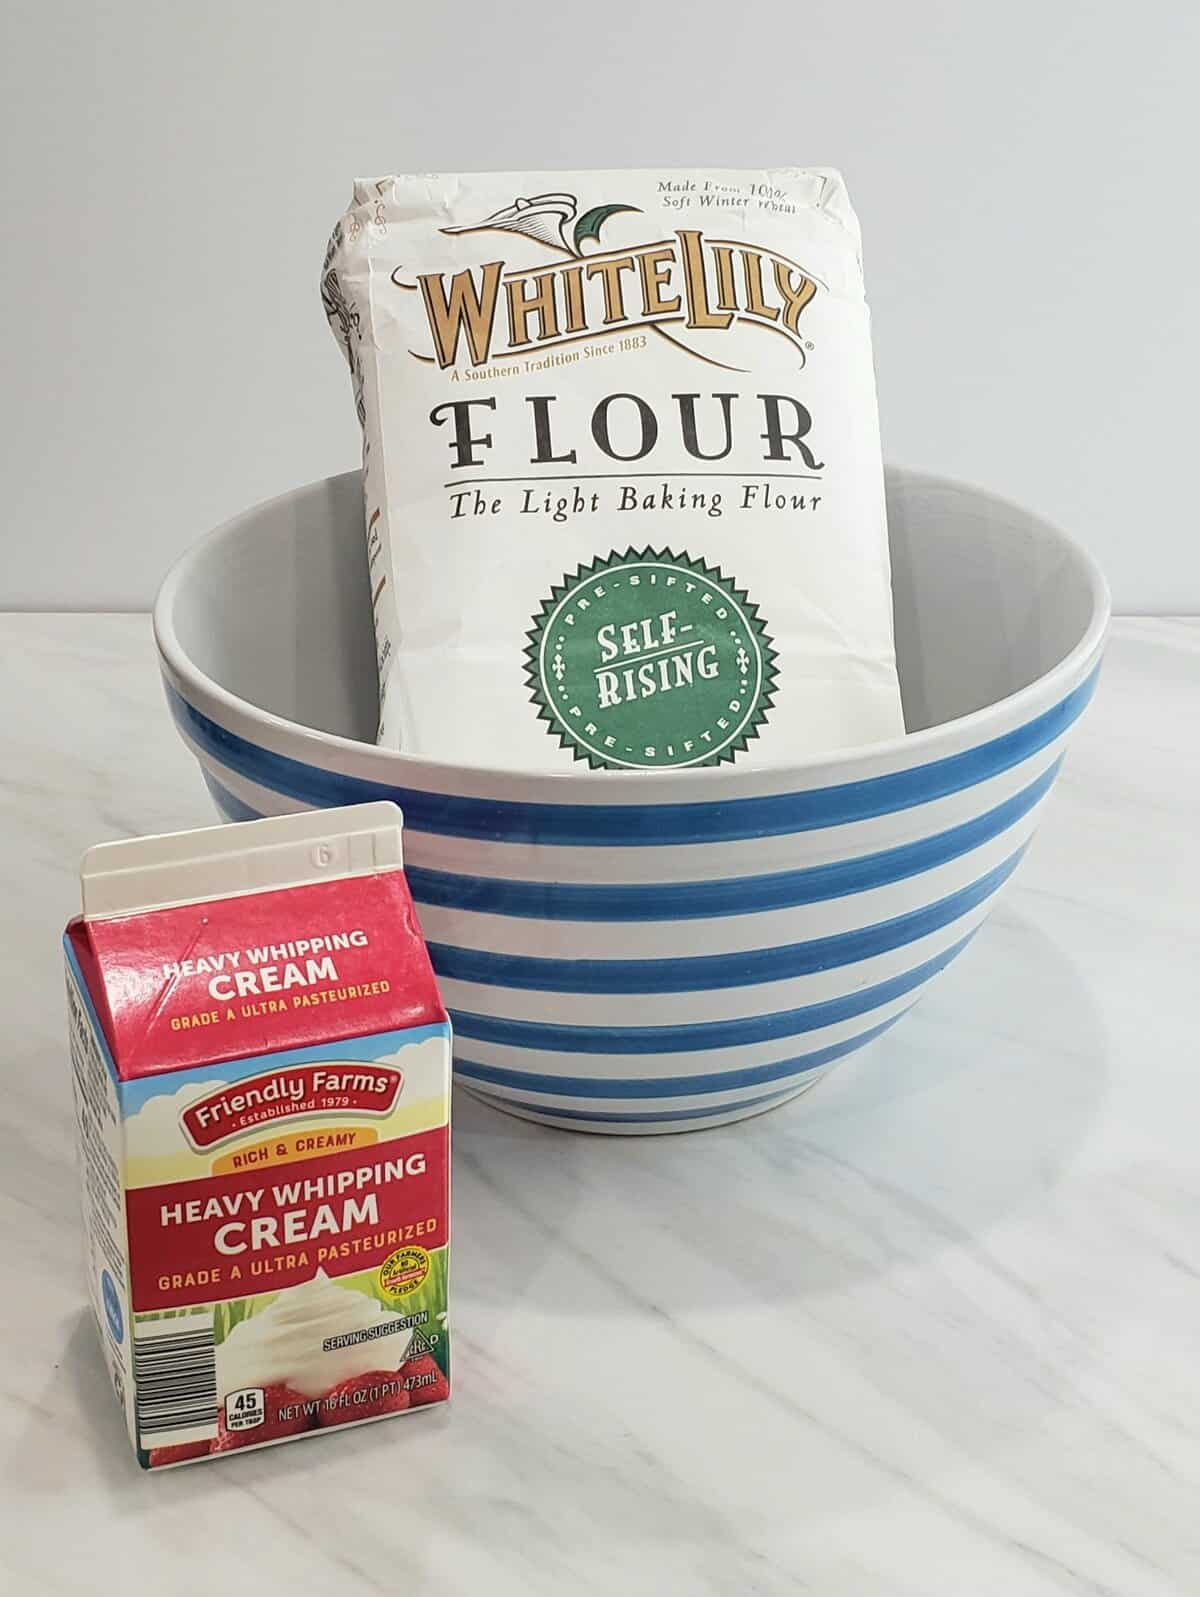 a bag of White Lily flour in a blue striped bowl with a quart of heavy whipping cream next to it